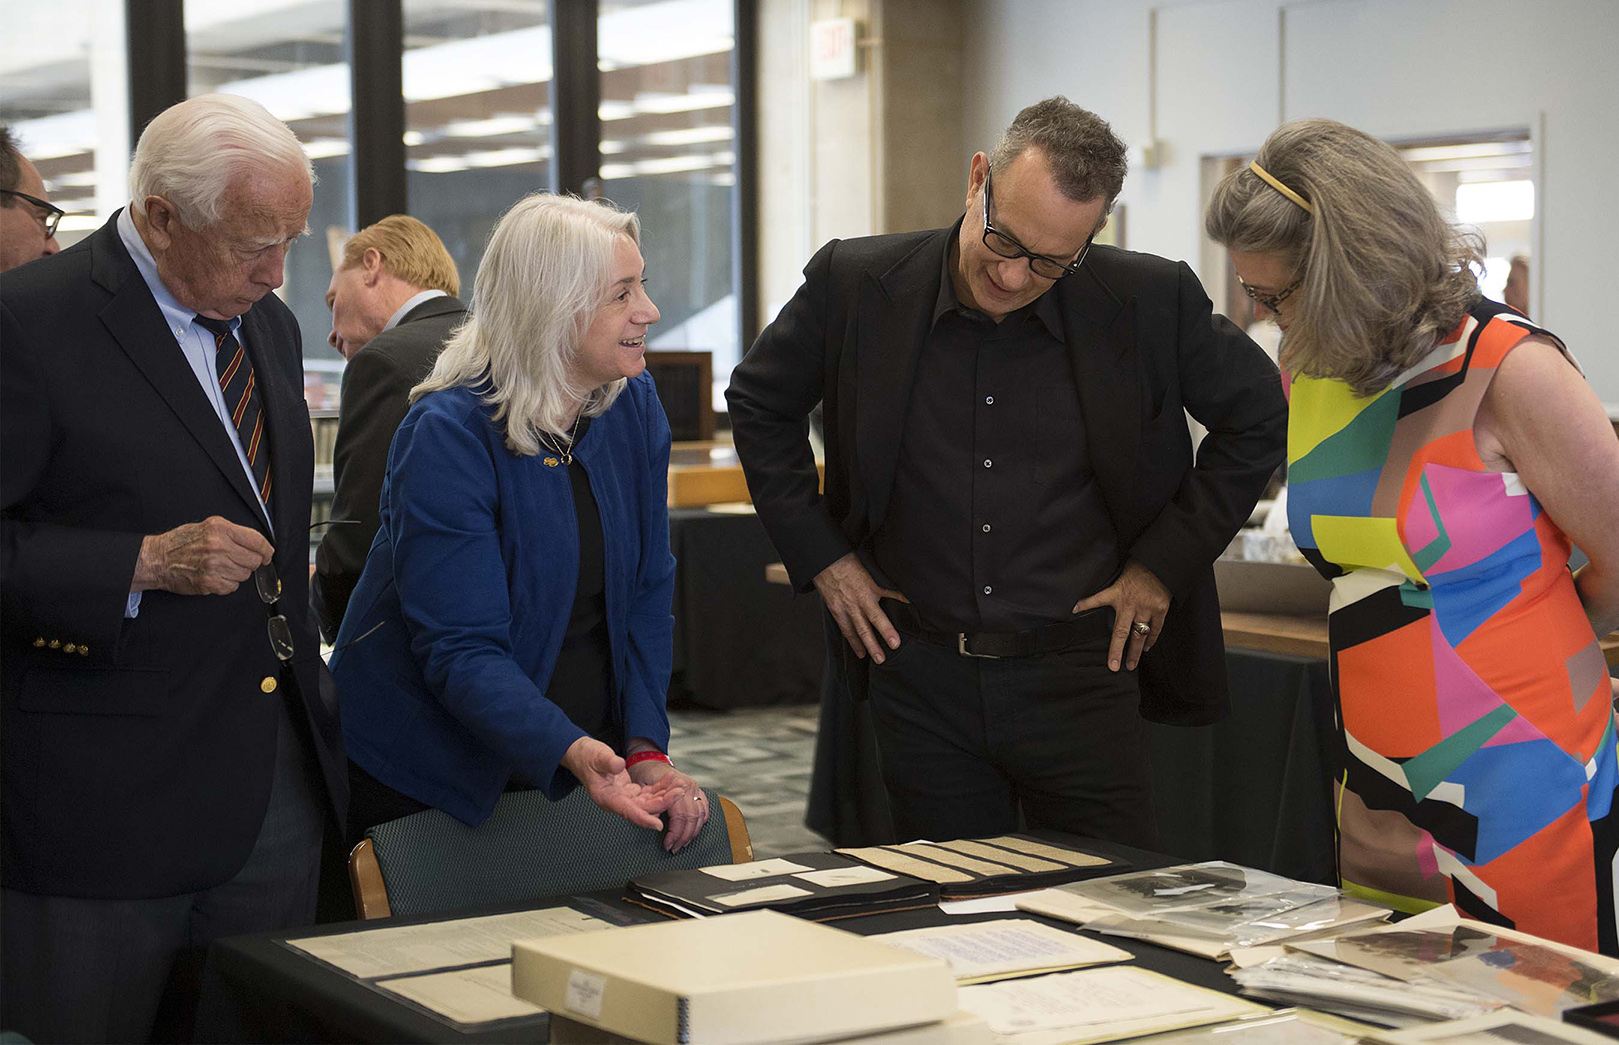 Dawne Dewey, Head of Special Collections & Archives, second from left, shares items from the Wright Brothers Collection with historian David McCullough (left), Tom Hanks, and Amanda Wright Lane, great-grandniece of the Wright Brothers. (Photo by university photographer Will Jones)